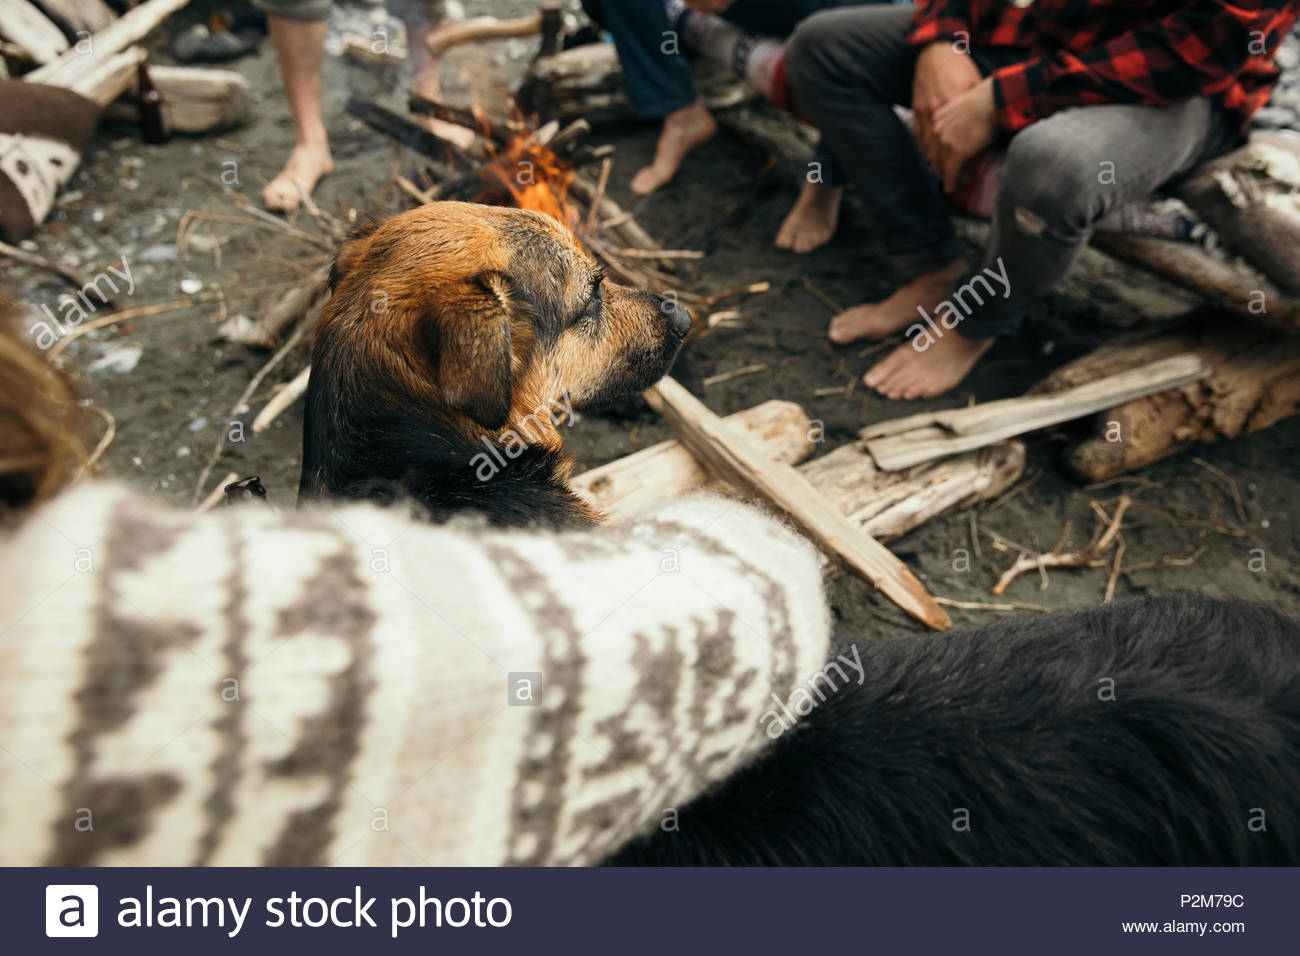 Woman petting dog at campfire - Stock Image